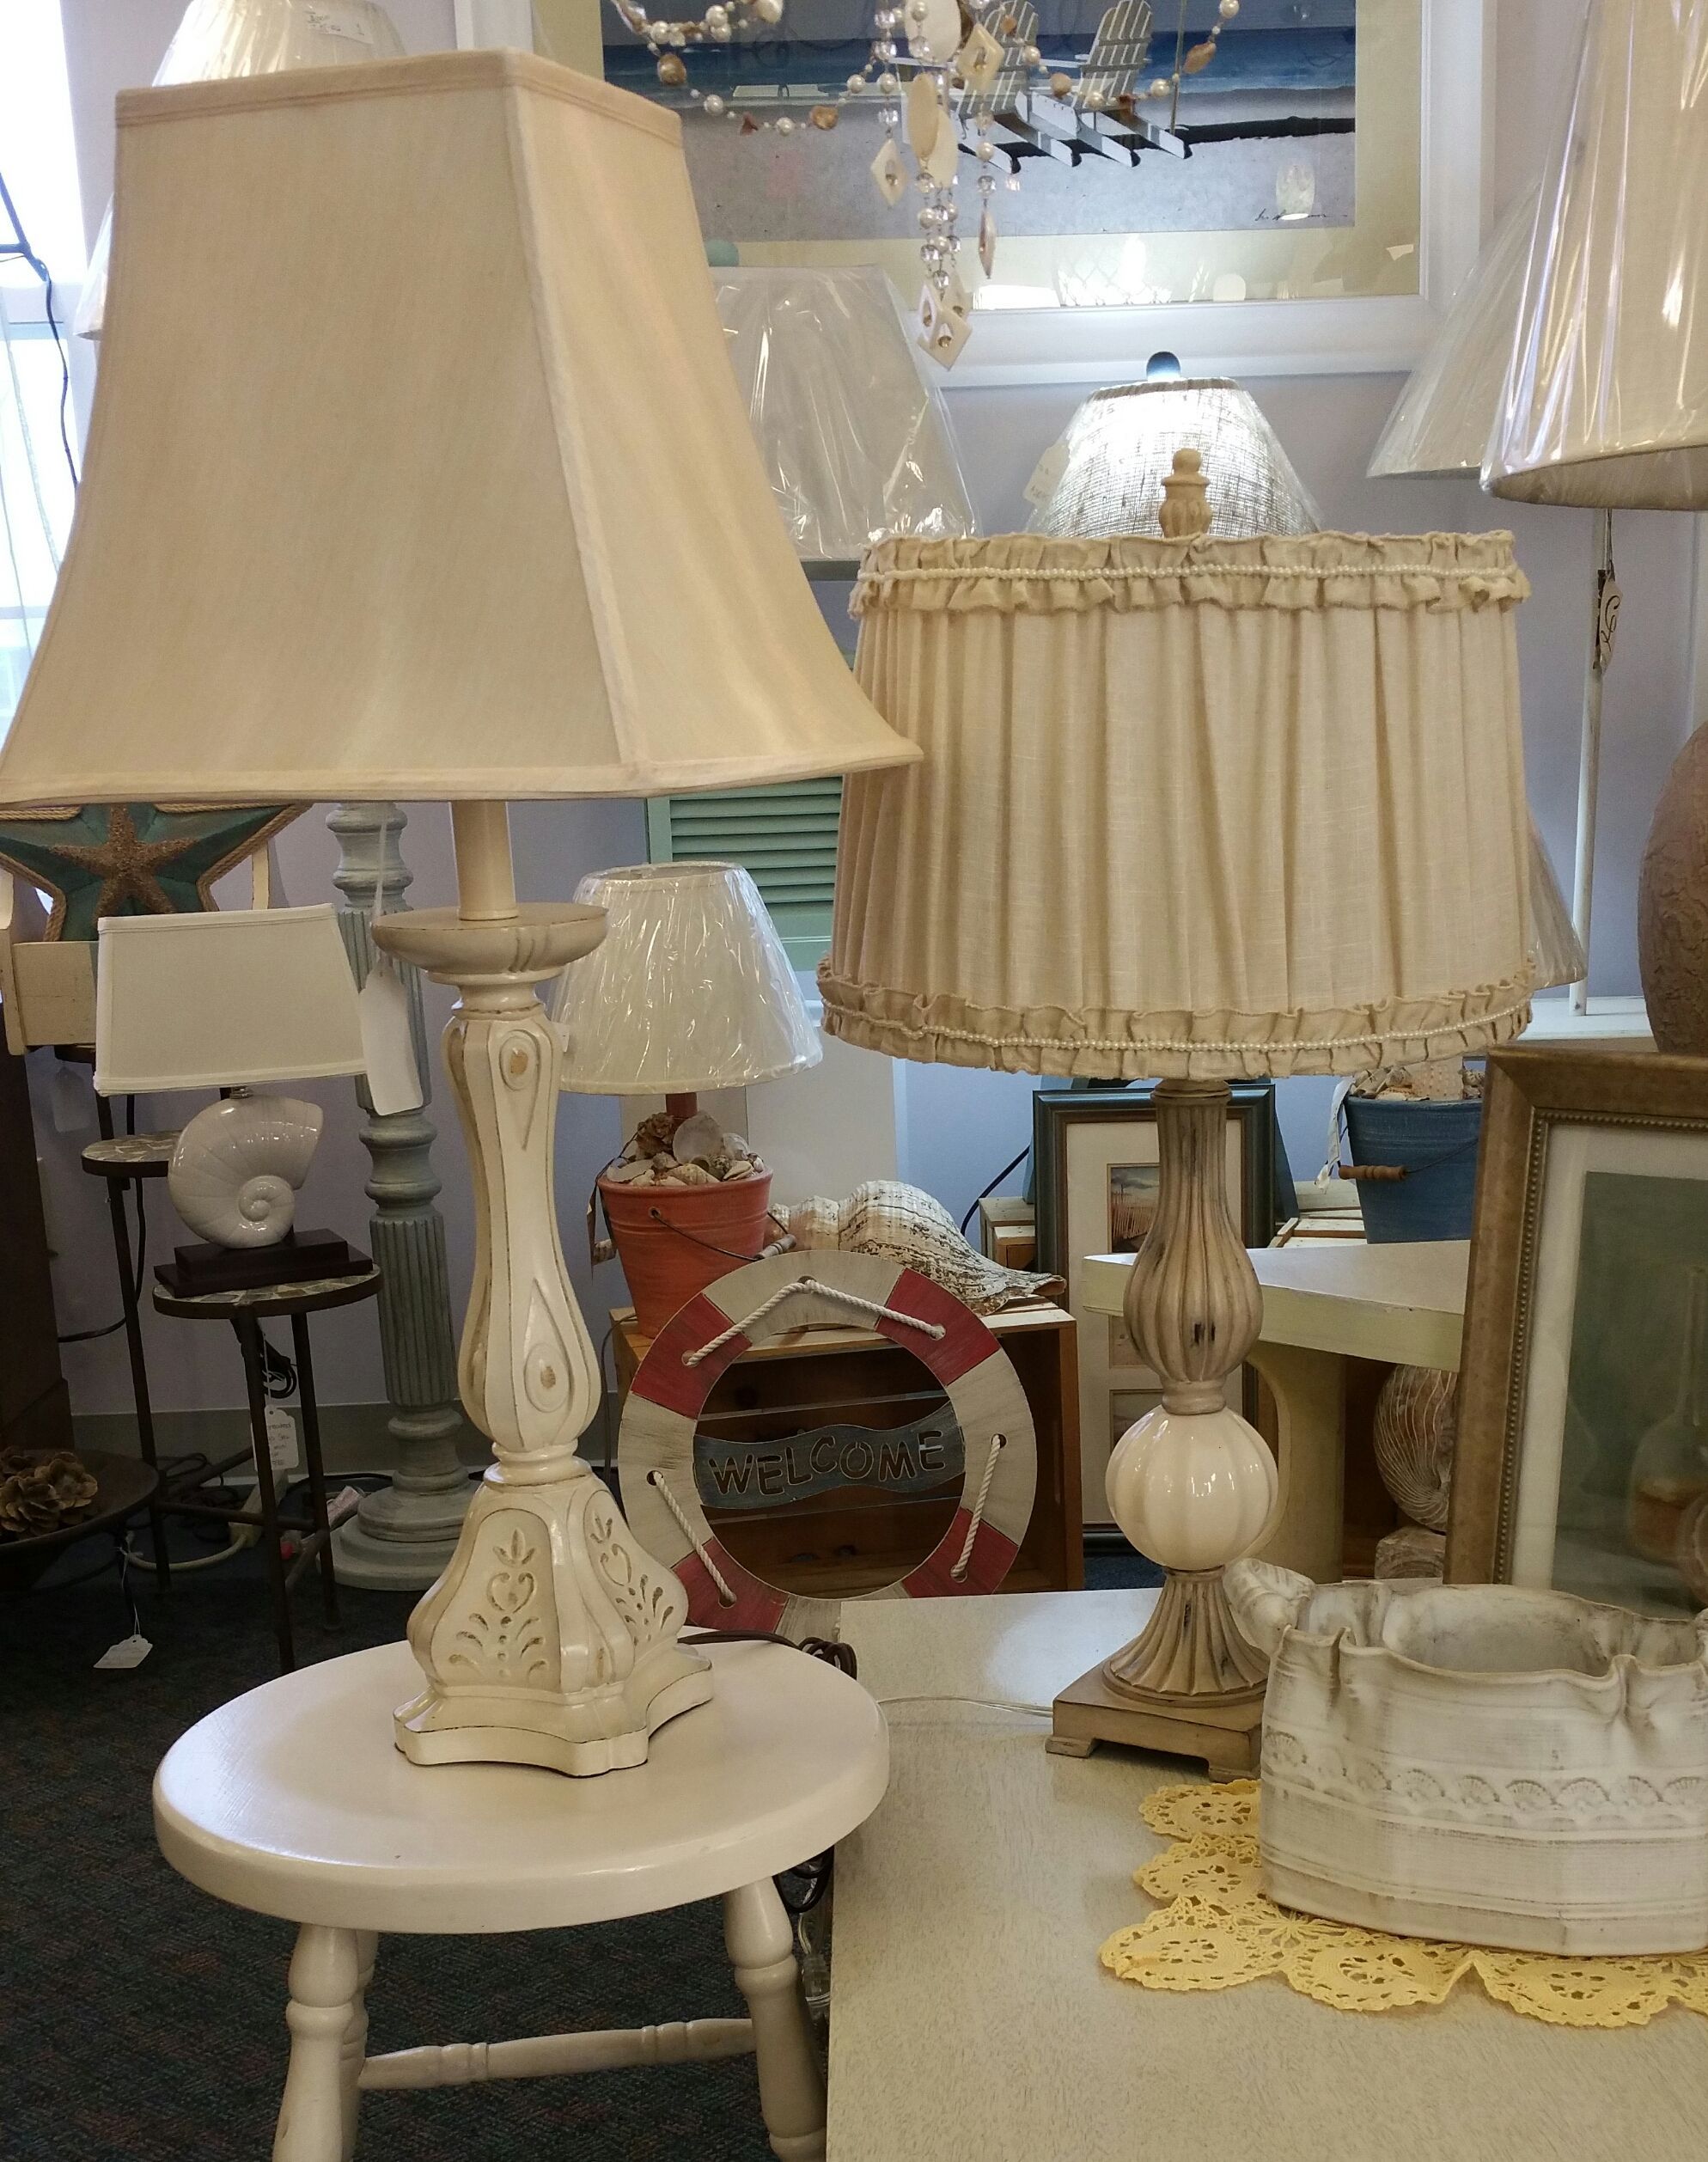 Shabby chic table lamps left antique white chic 17995 right shabby chic table lamps left antique white chic 17995 right cottage pearls 17995 both include the shades rewired for safety 269 345 0967 keyboard keysfo Image collections